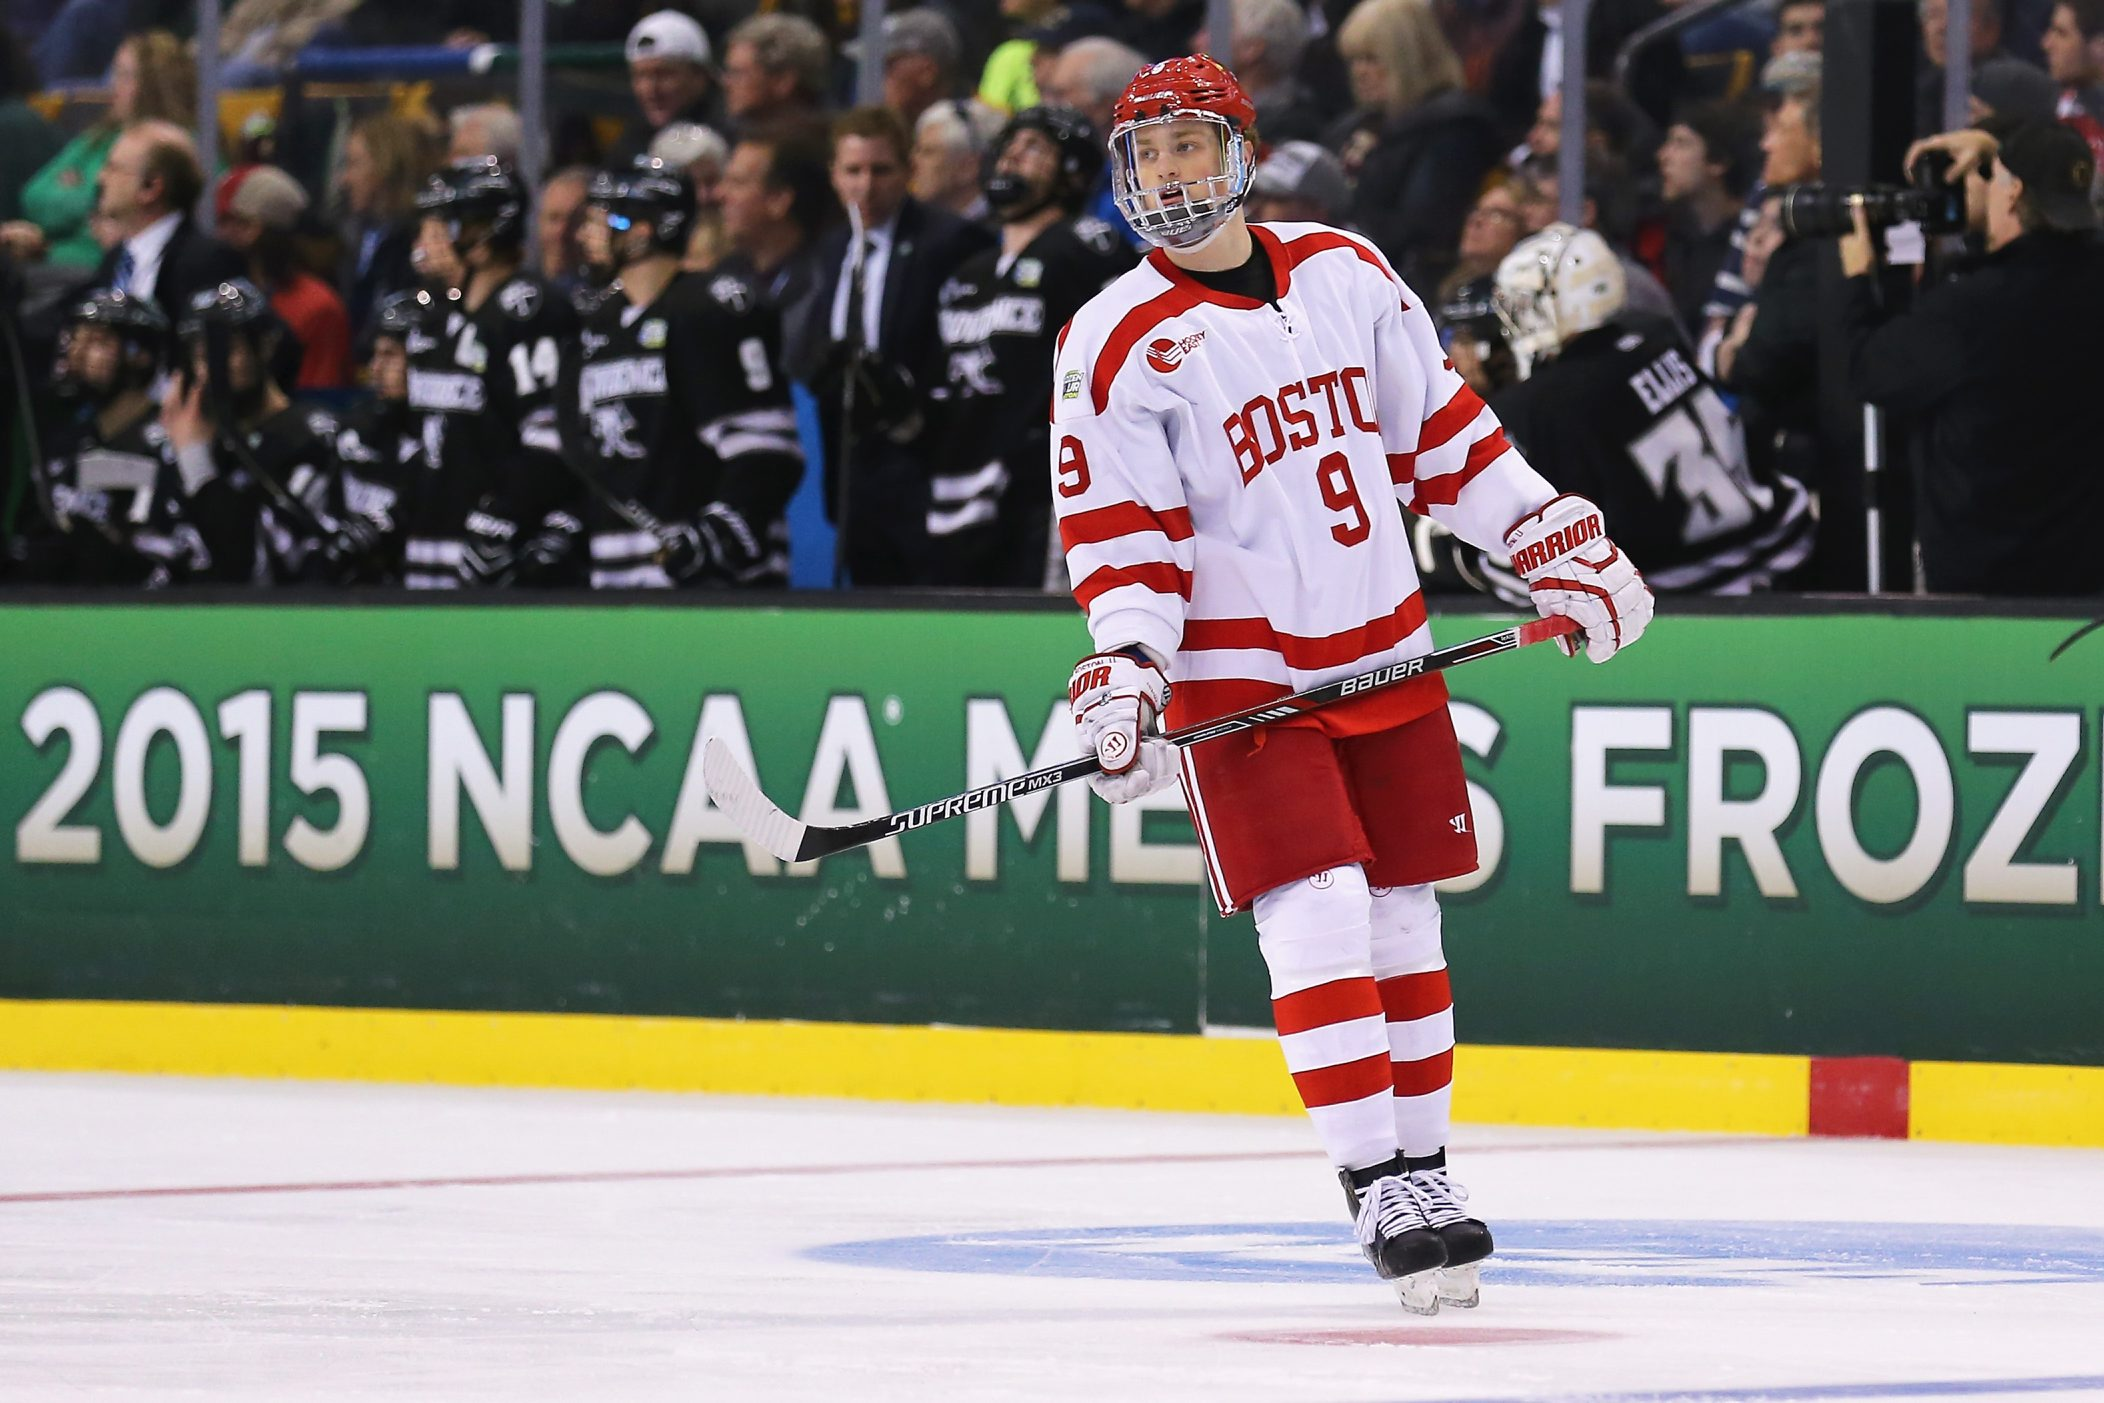 Jack Eichel of the Boston University Terriers skates against the Providence Friars during the 2015 NCAA Division I Men's Hockey Championships at TD Garden on April 11 in Boston, Mass.  (Getty Images)